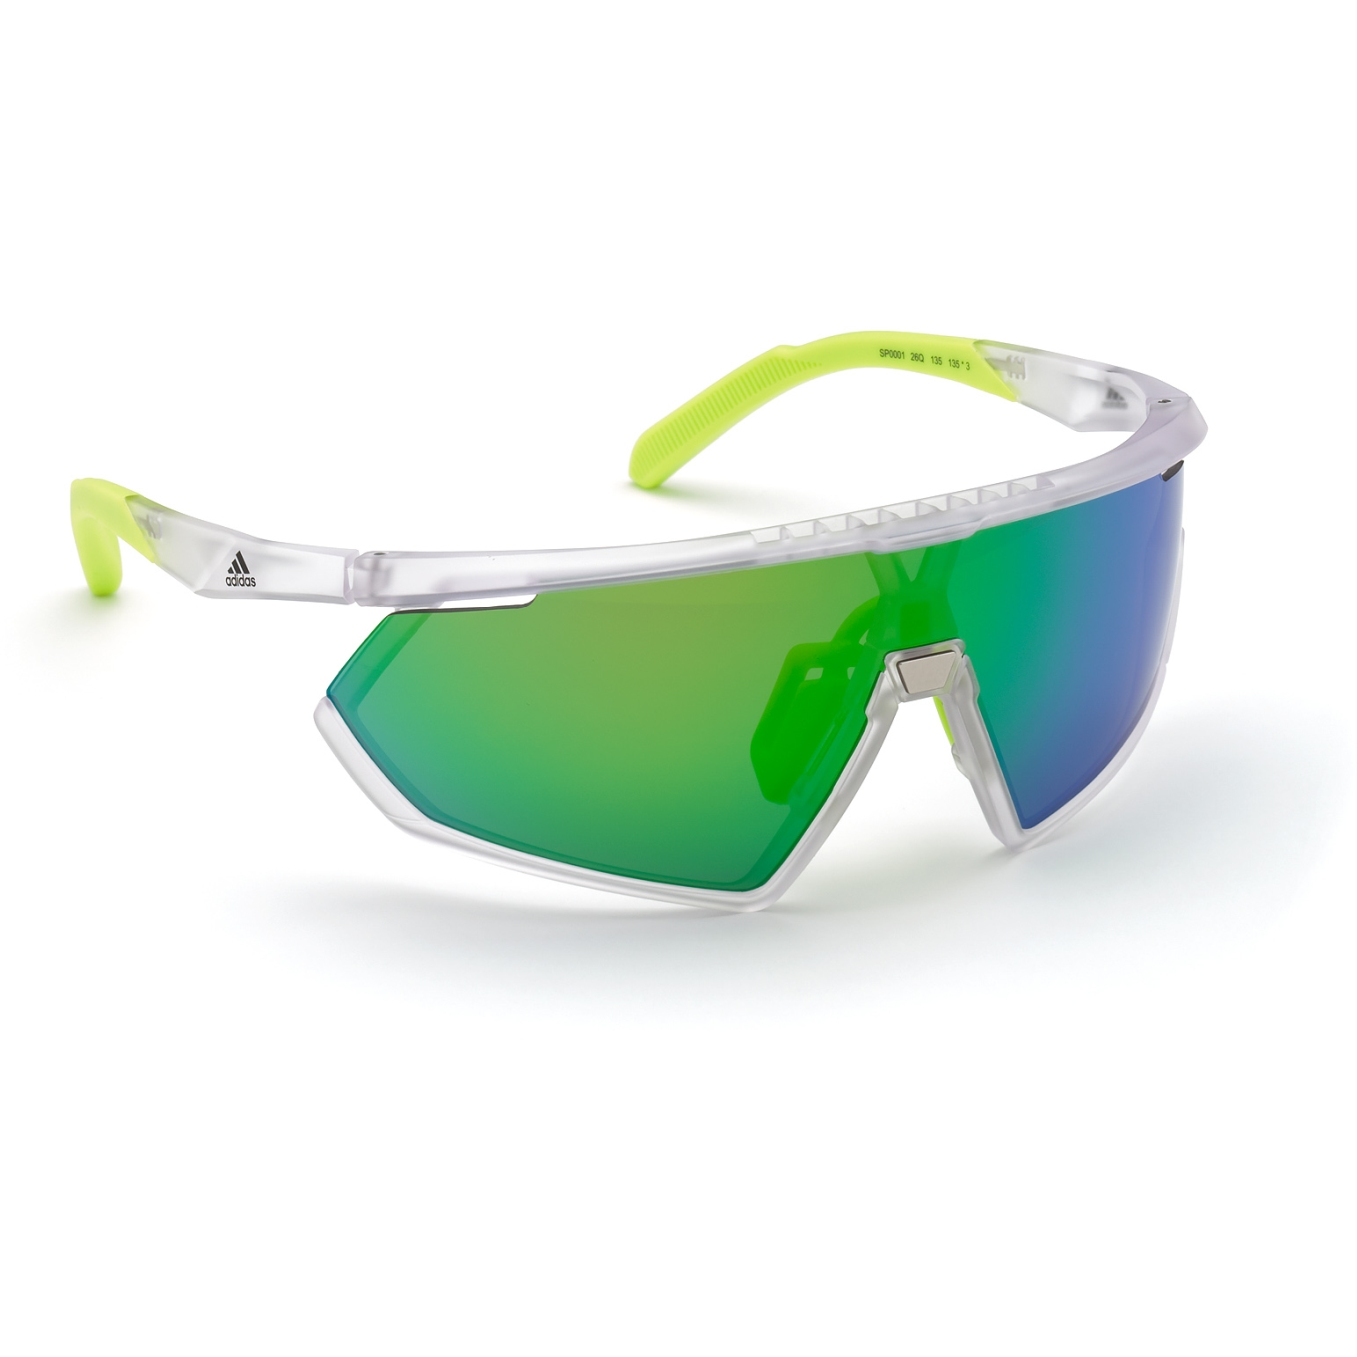 adidas Sp0001 Injected Sport Sunglasses - Frosted Crystal / Contrast Mirror Green + Orange